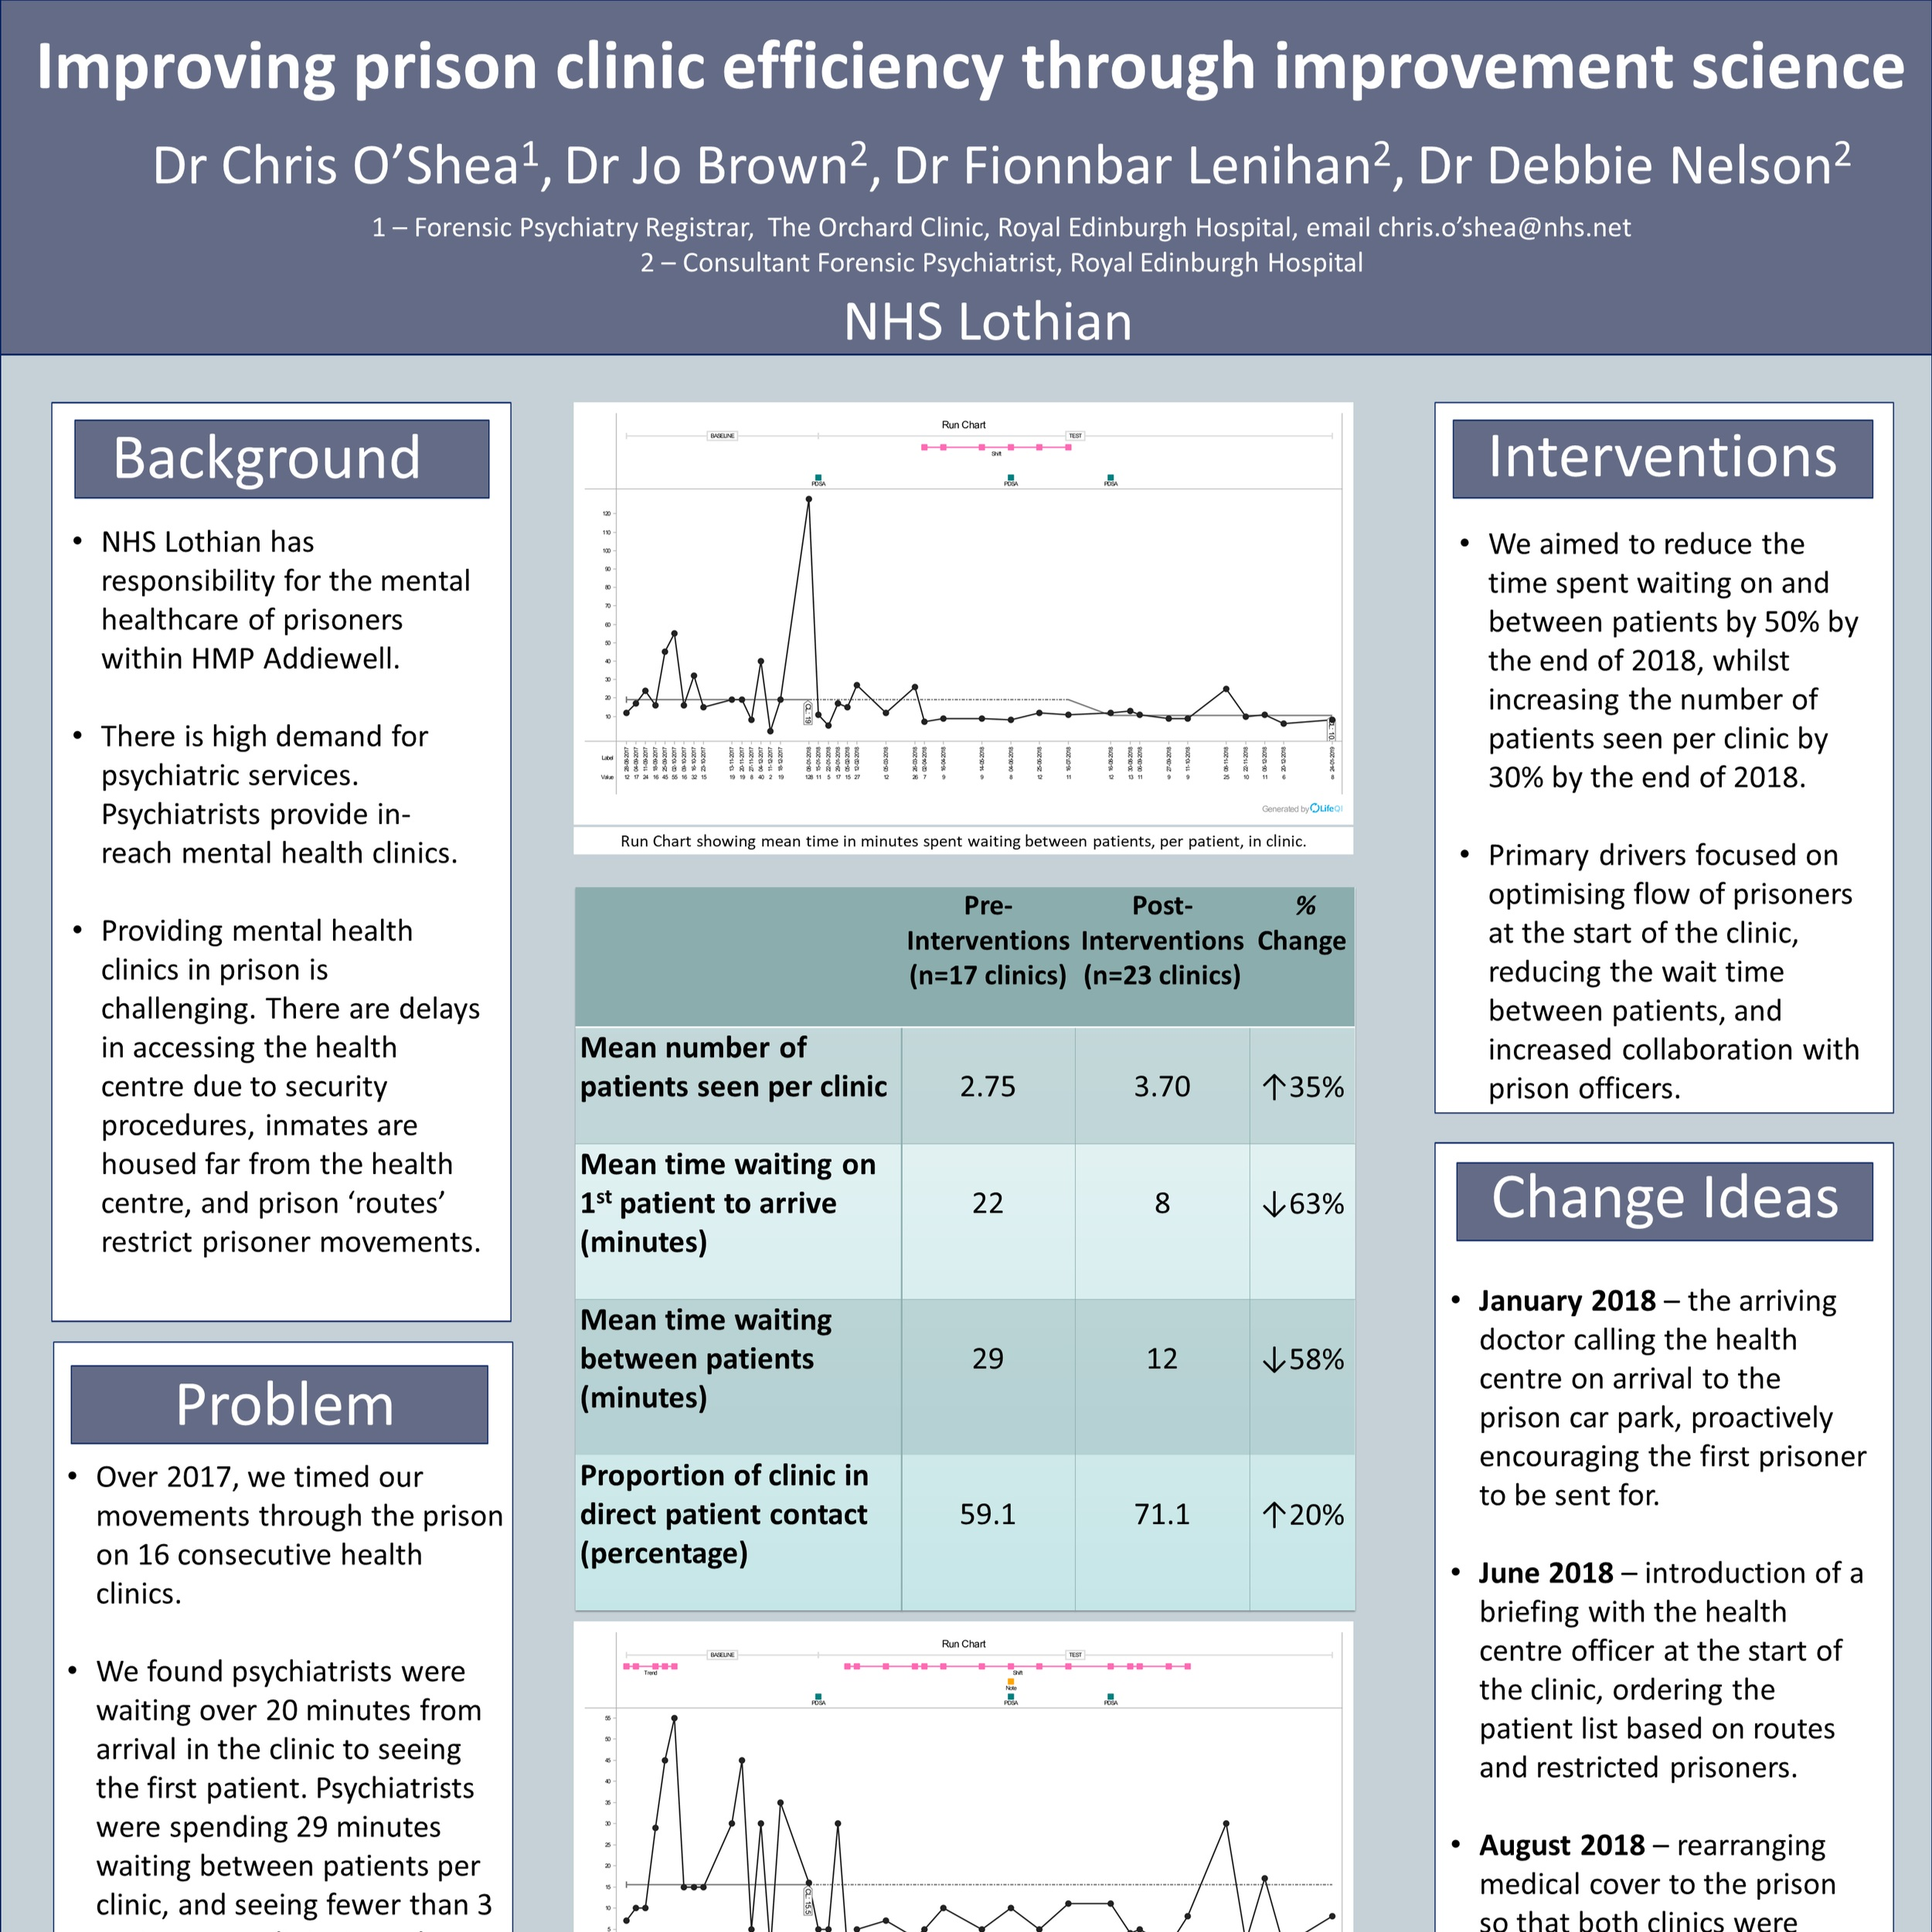 Improving prison clinic efficiency through improvement science